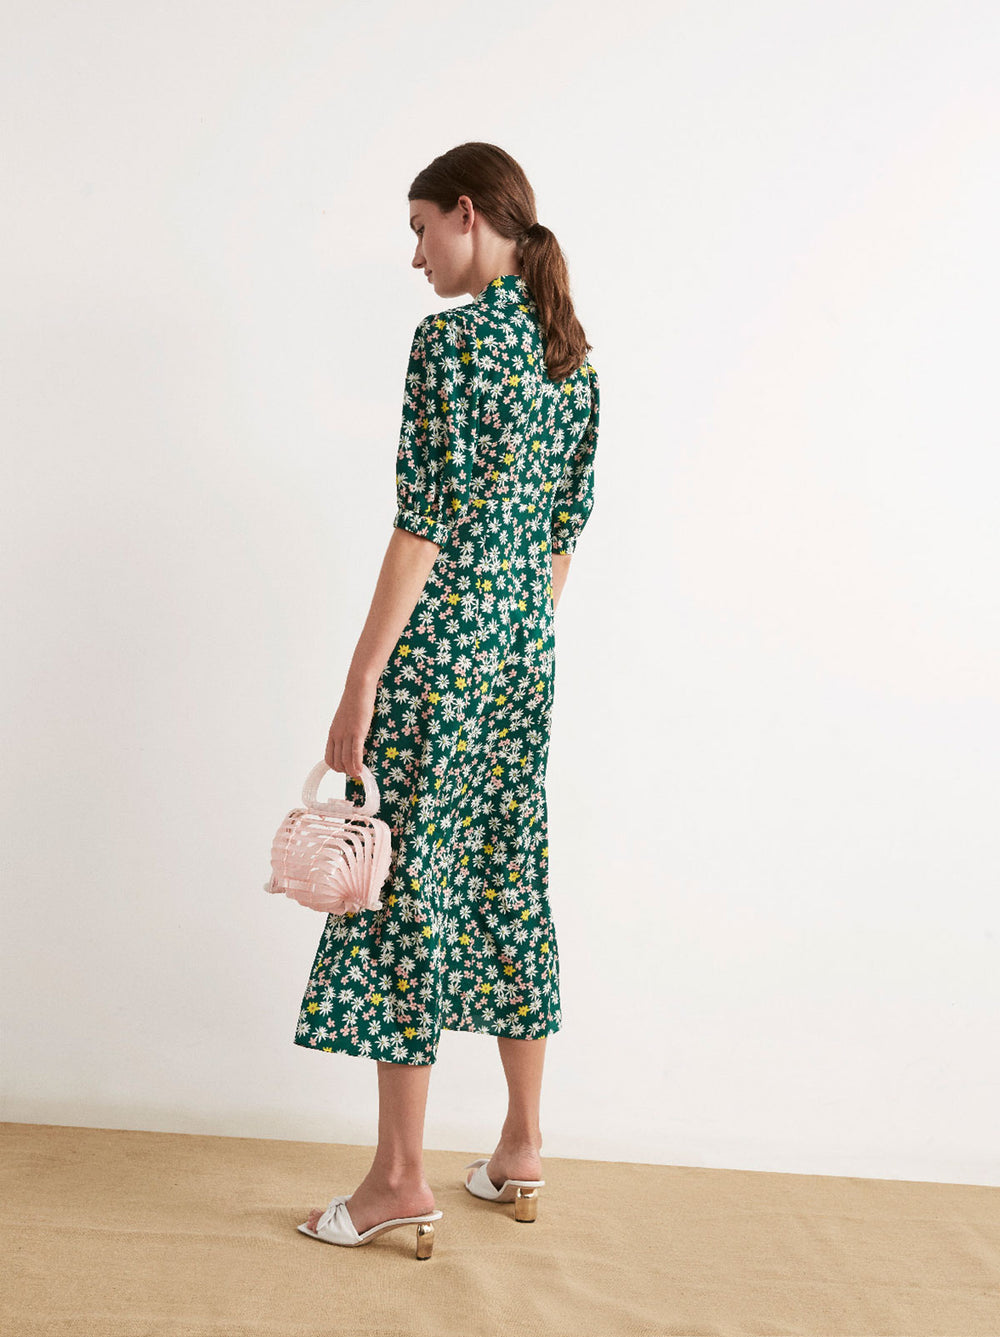 Siena Floral Print Tea Dress by KITRI Studio